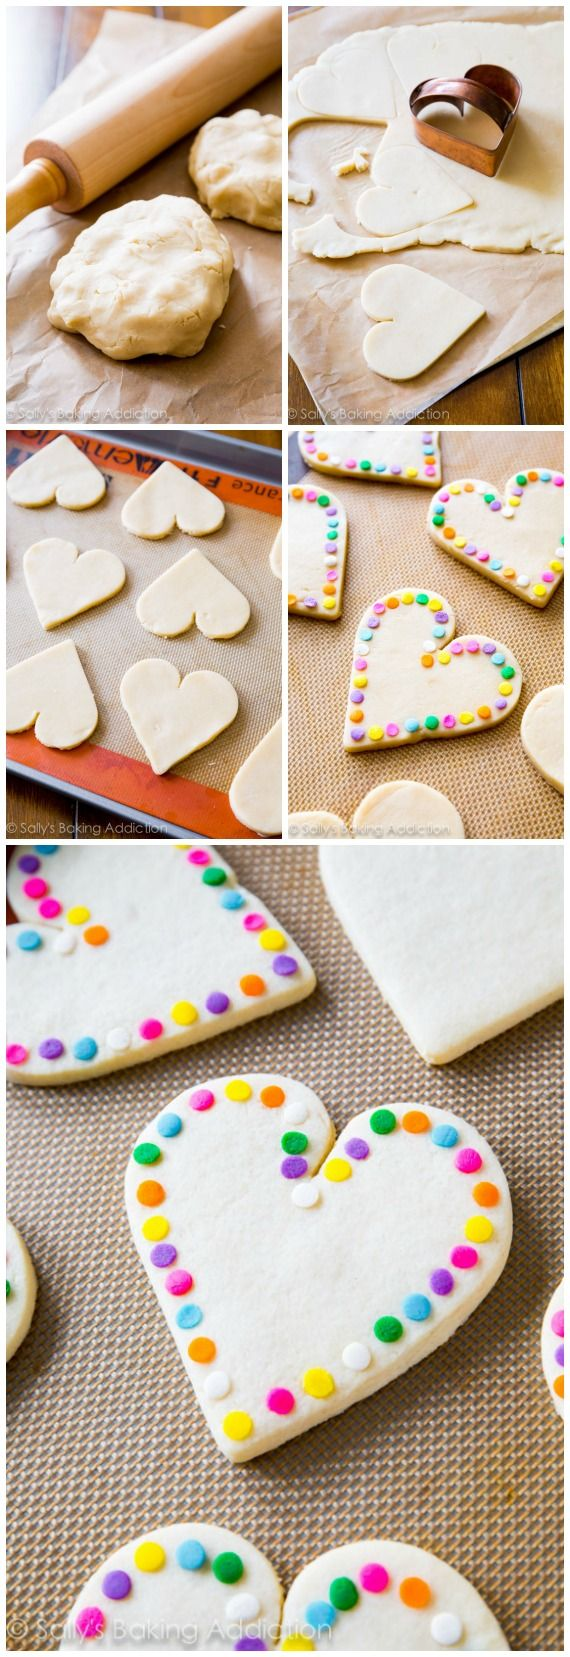 ... Cut-Out Sugar Cookies by sallysbakingaddiction.com. These are the BEST